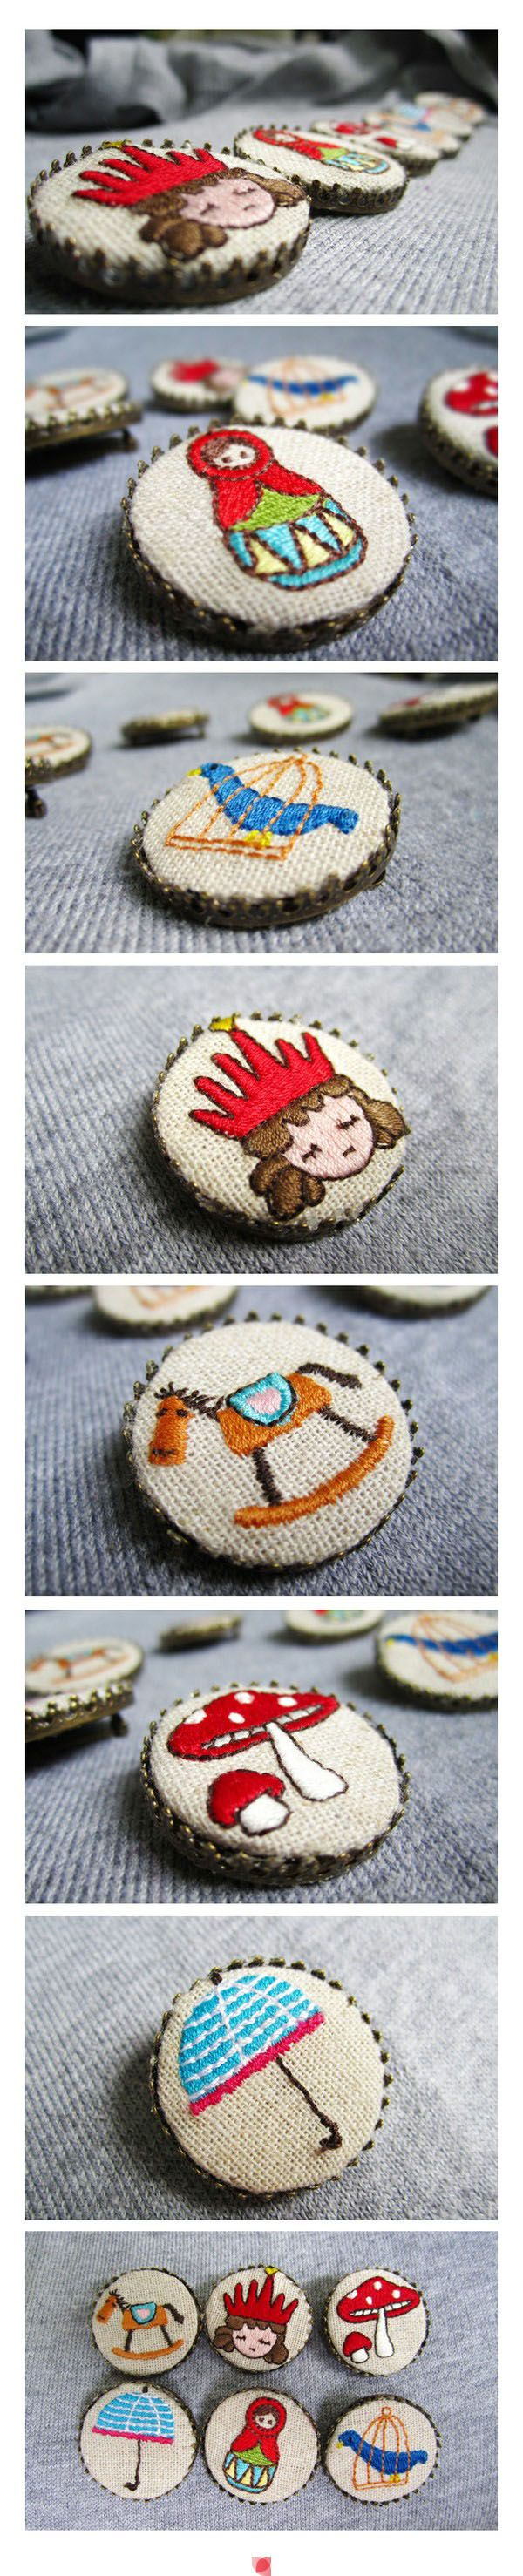 bottle cap embroidery - miniature